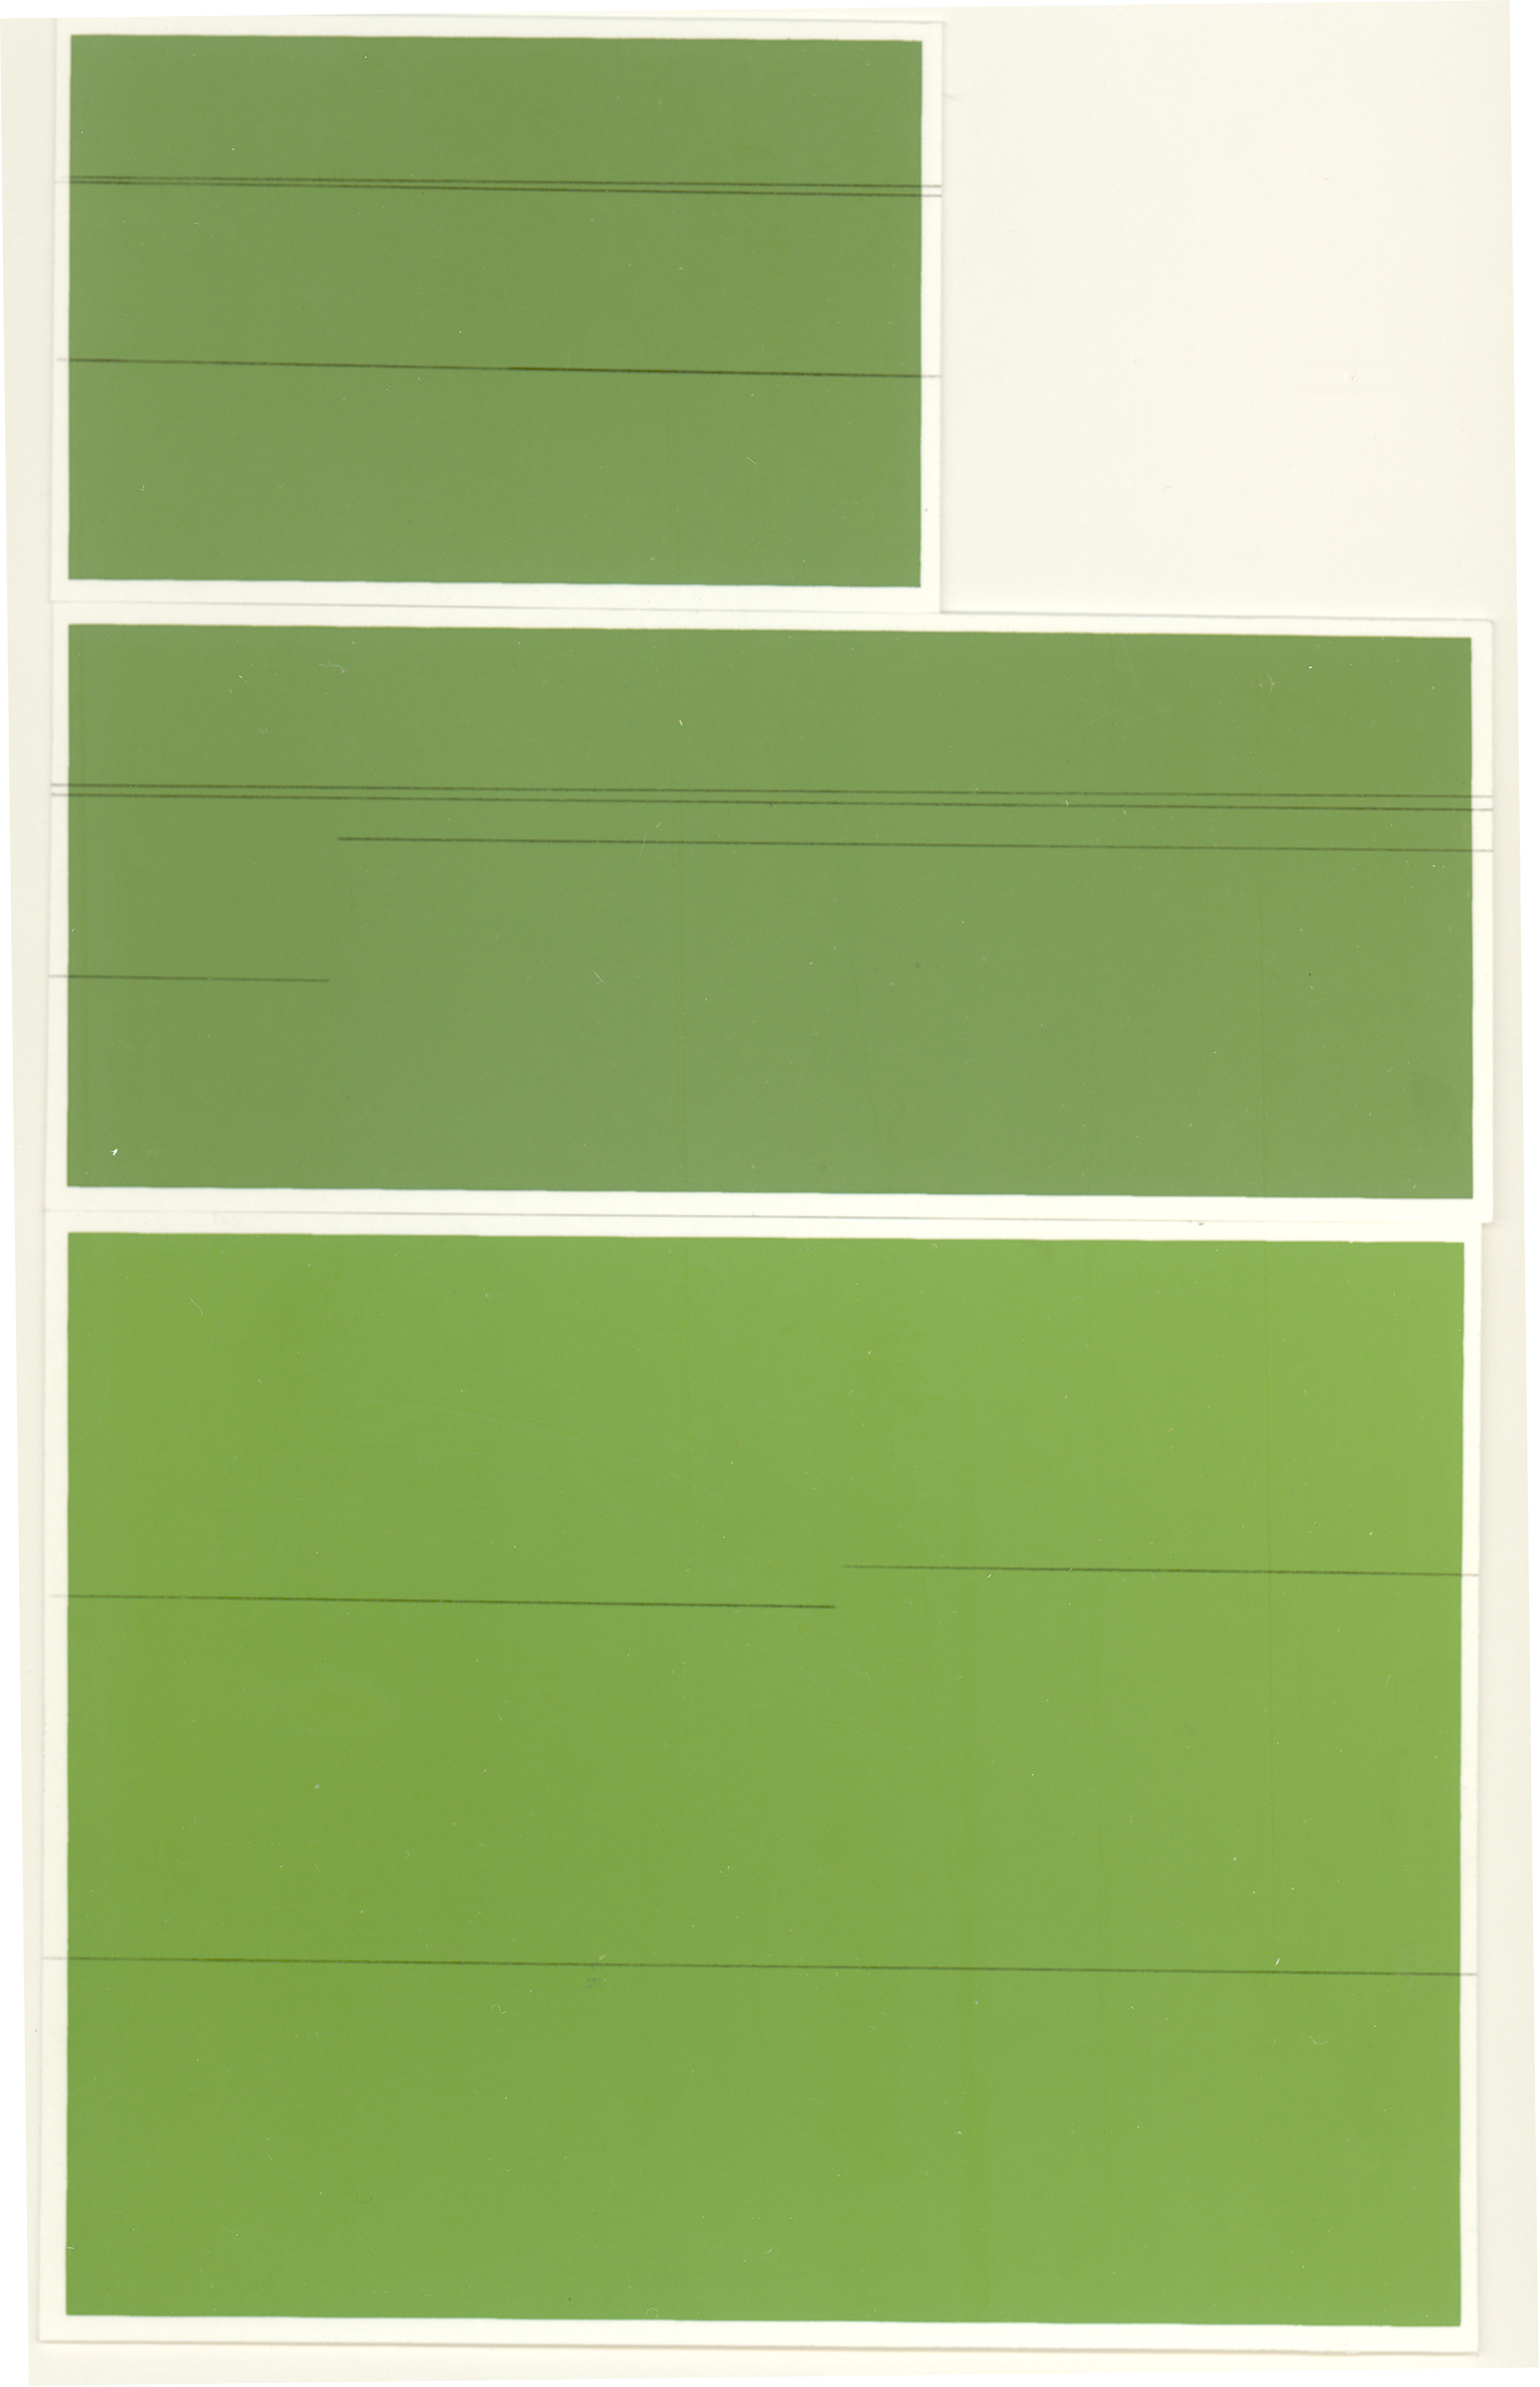 All Greens Boards and Roads, graphite transfer on screenprint, 10 x 6.5 inches